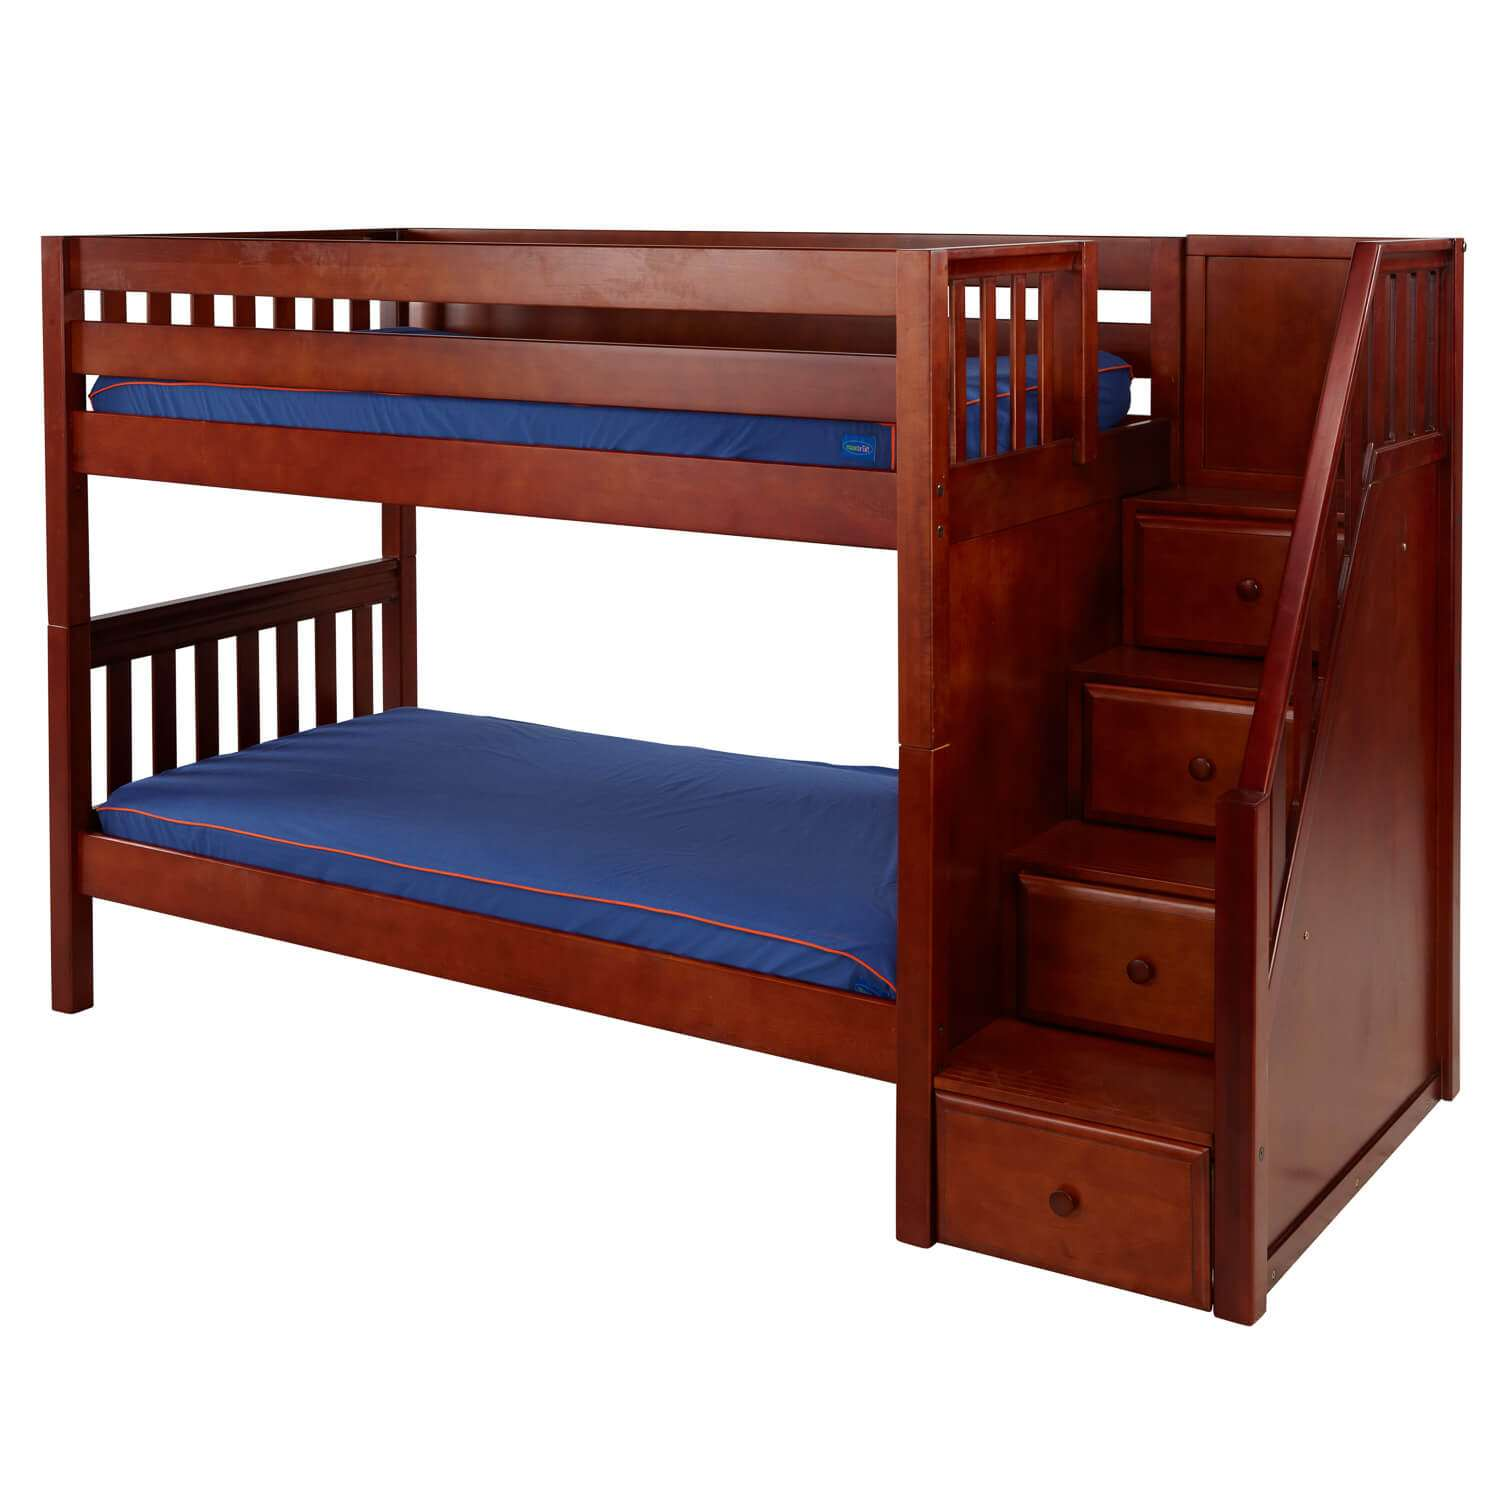 Childrens bunk beds kids twin bunk beds